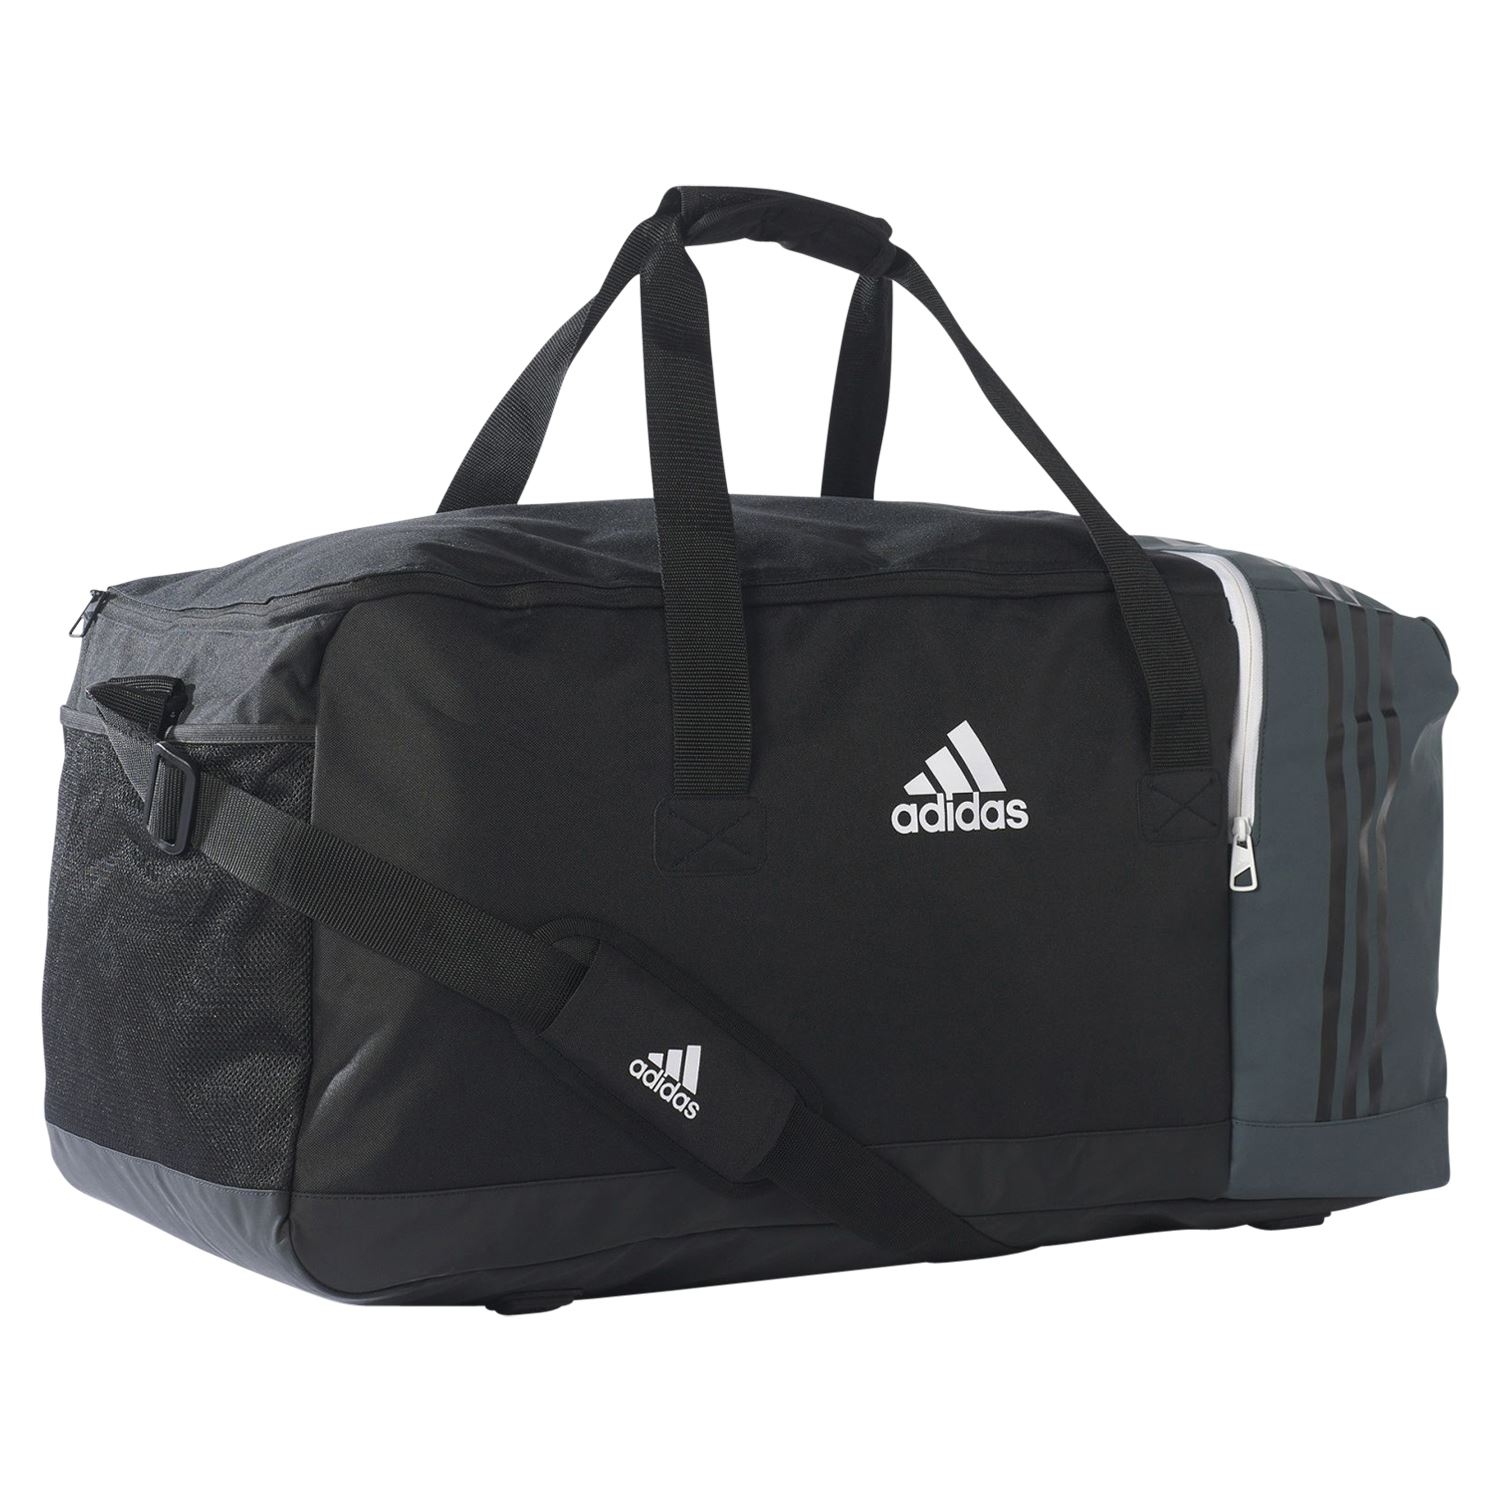 300d9e793f53 Details about adidas ESSENTIALS TIRO TEAM BAG LARGE BLACK GREY FOOTBALL  HOLDALL TRAINING GYM